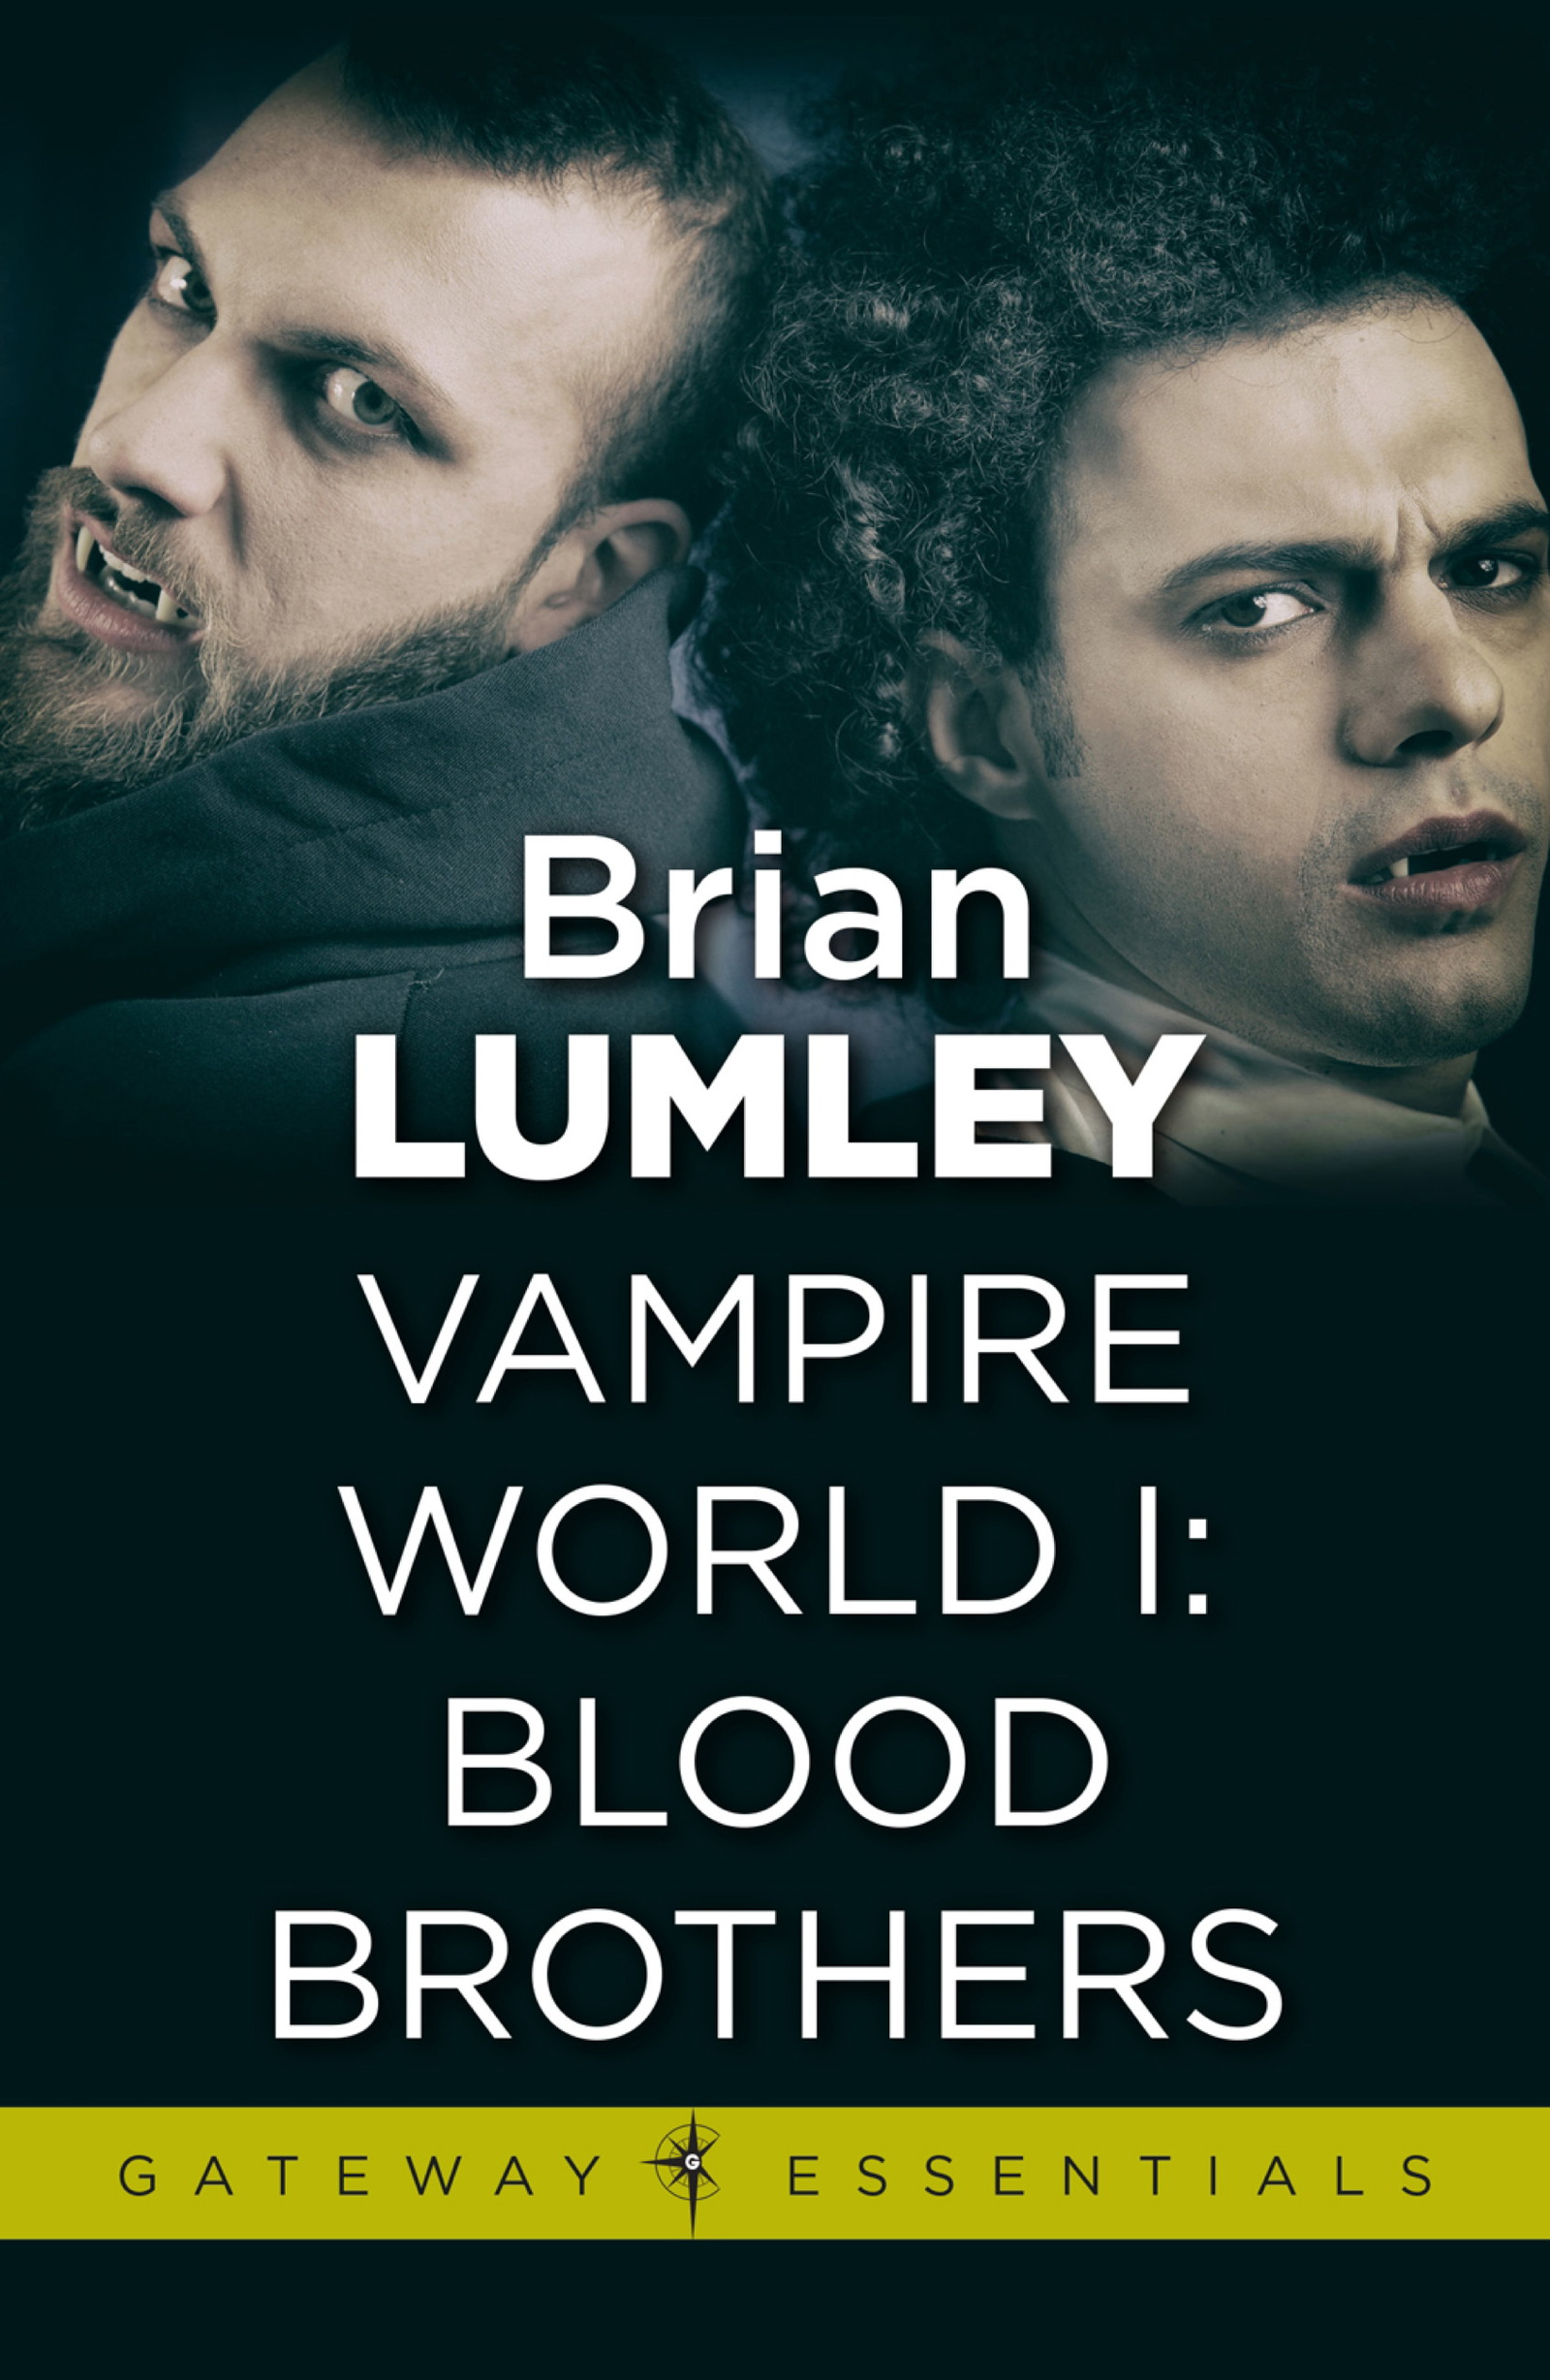 Vampire World 1: Blood Brothers